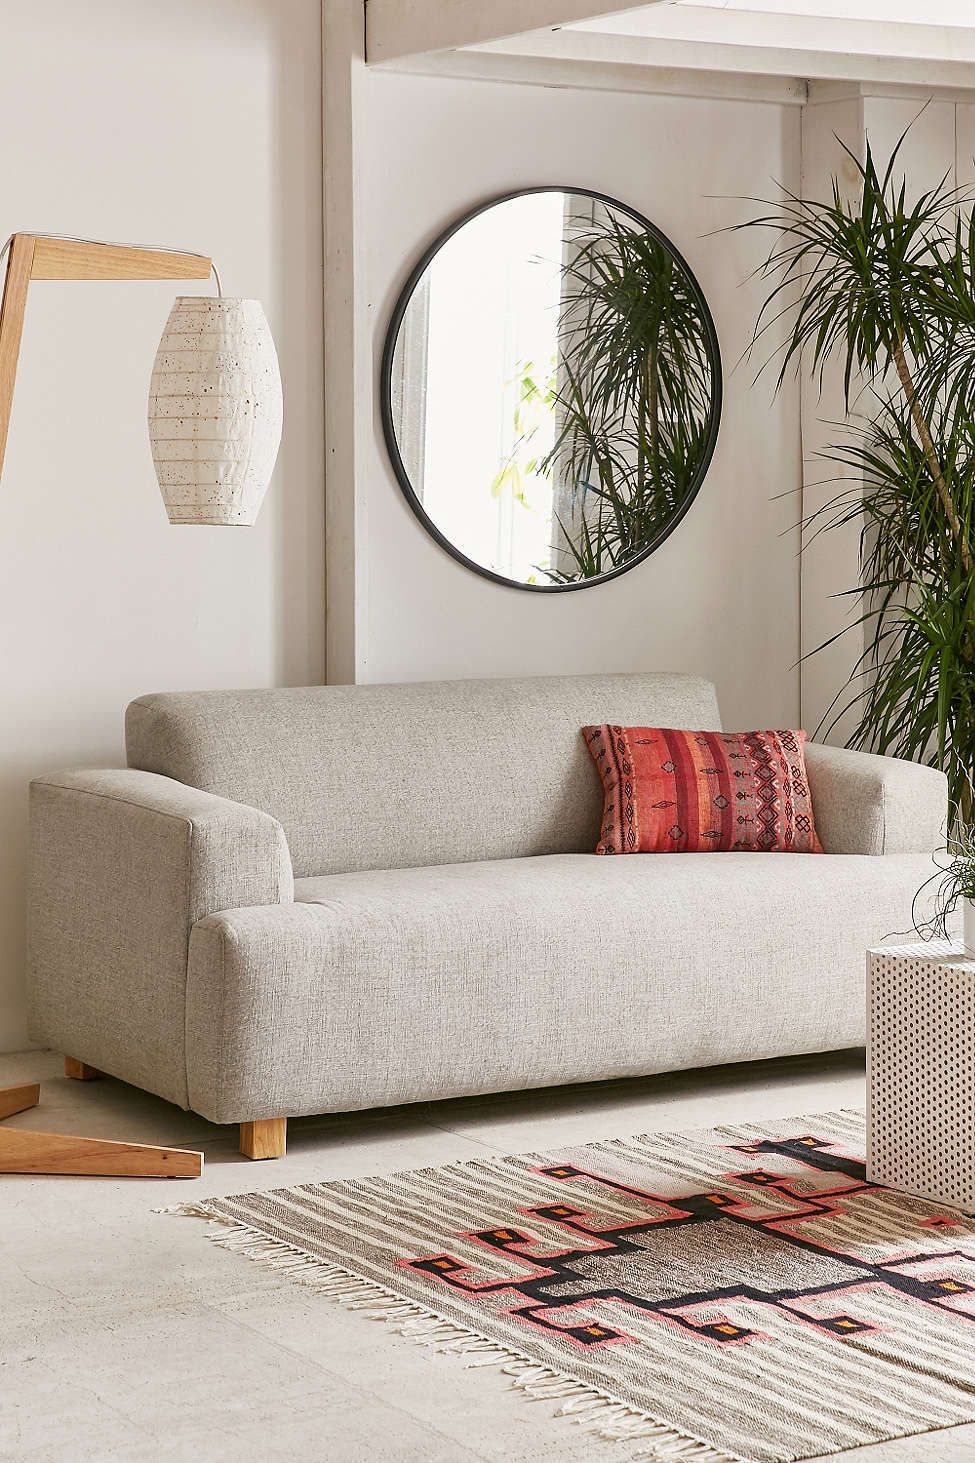 up quincy home sofas your sectional blog couch brighten urban chaise colorful tiki under outfitters modern sofa